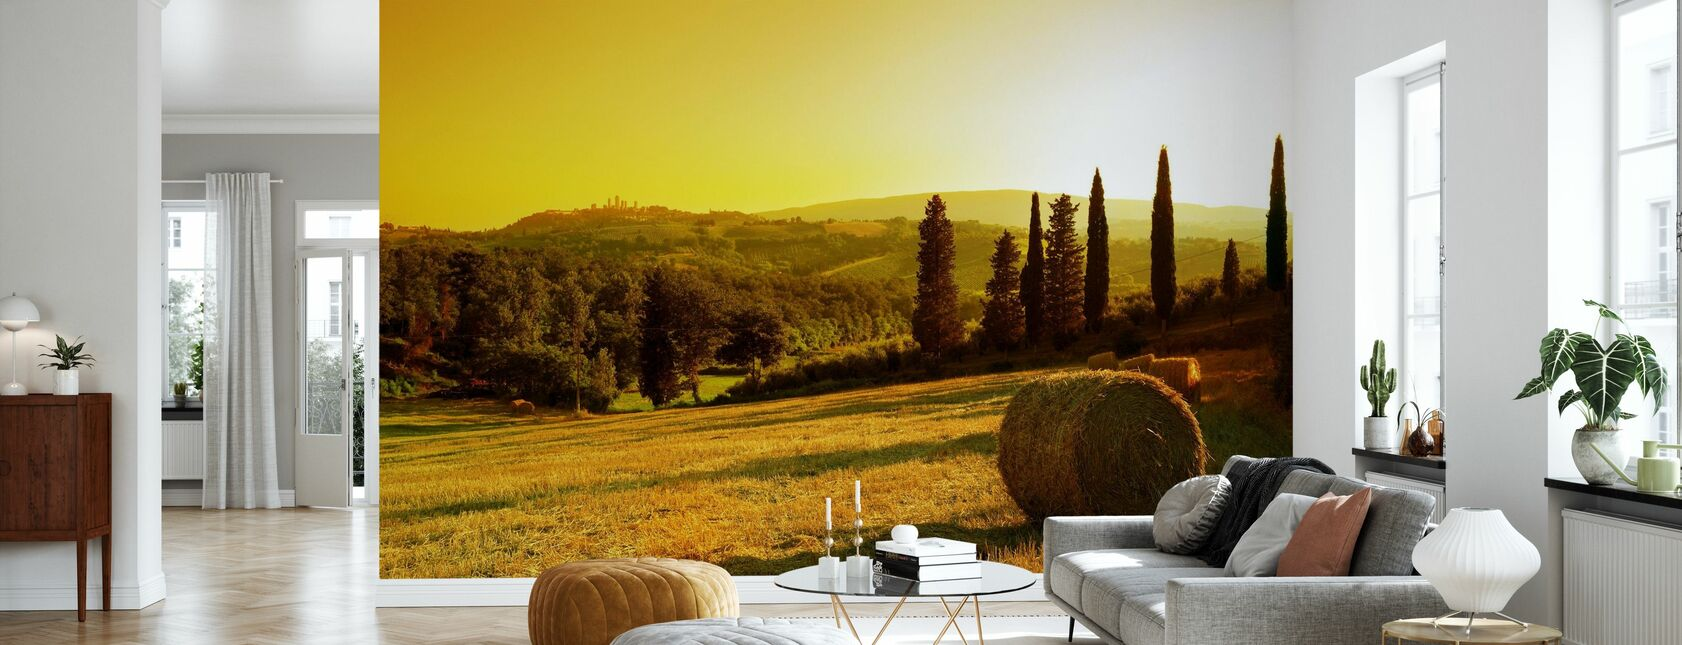 Sunset Tuscany Landscape - Wallpaper - Living Room